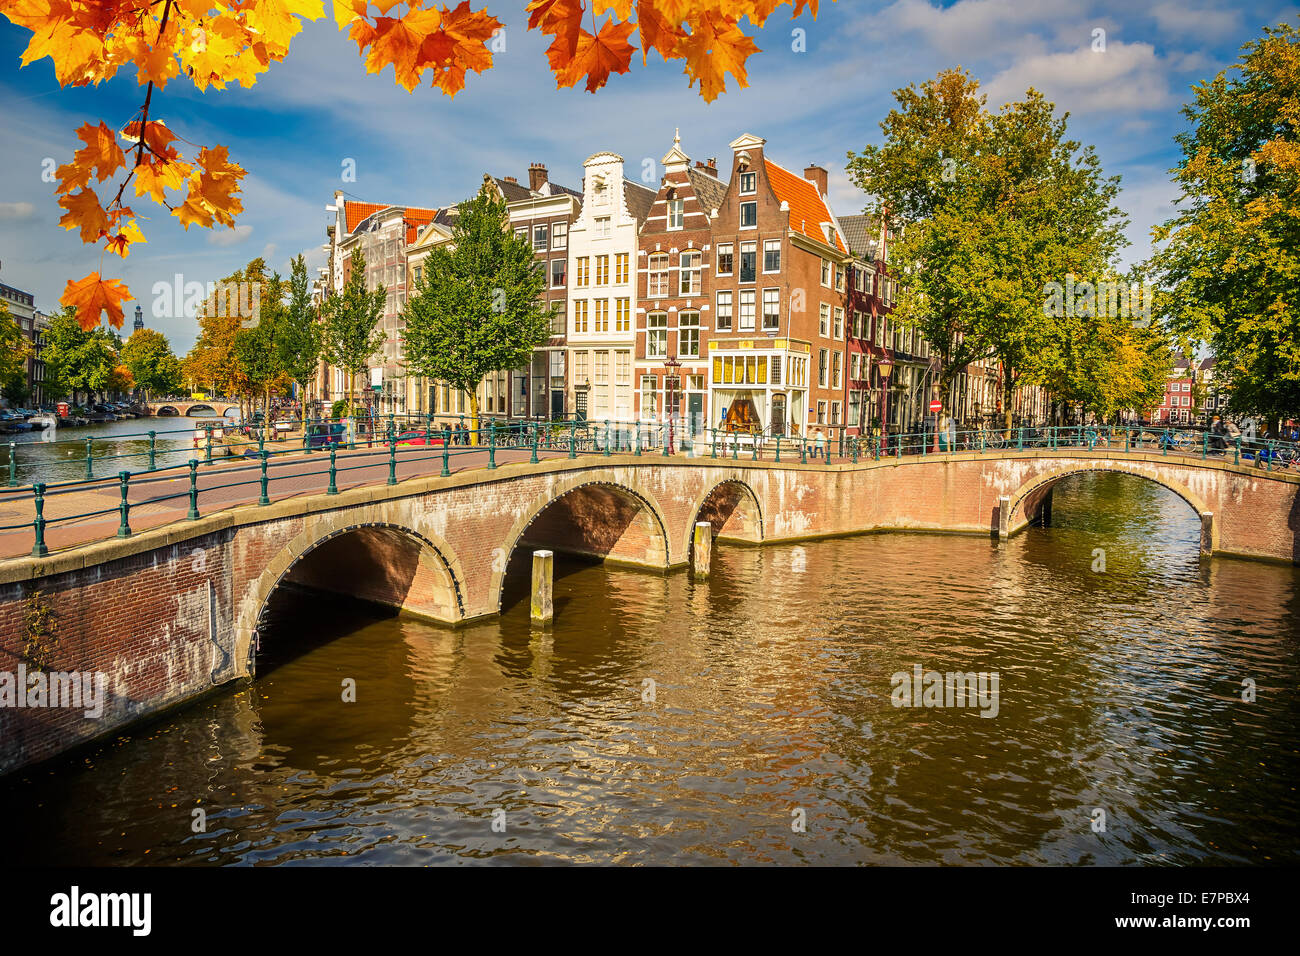 La ville d'Amsterdam Photo Stock